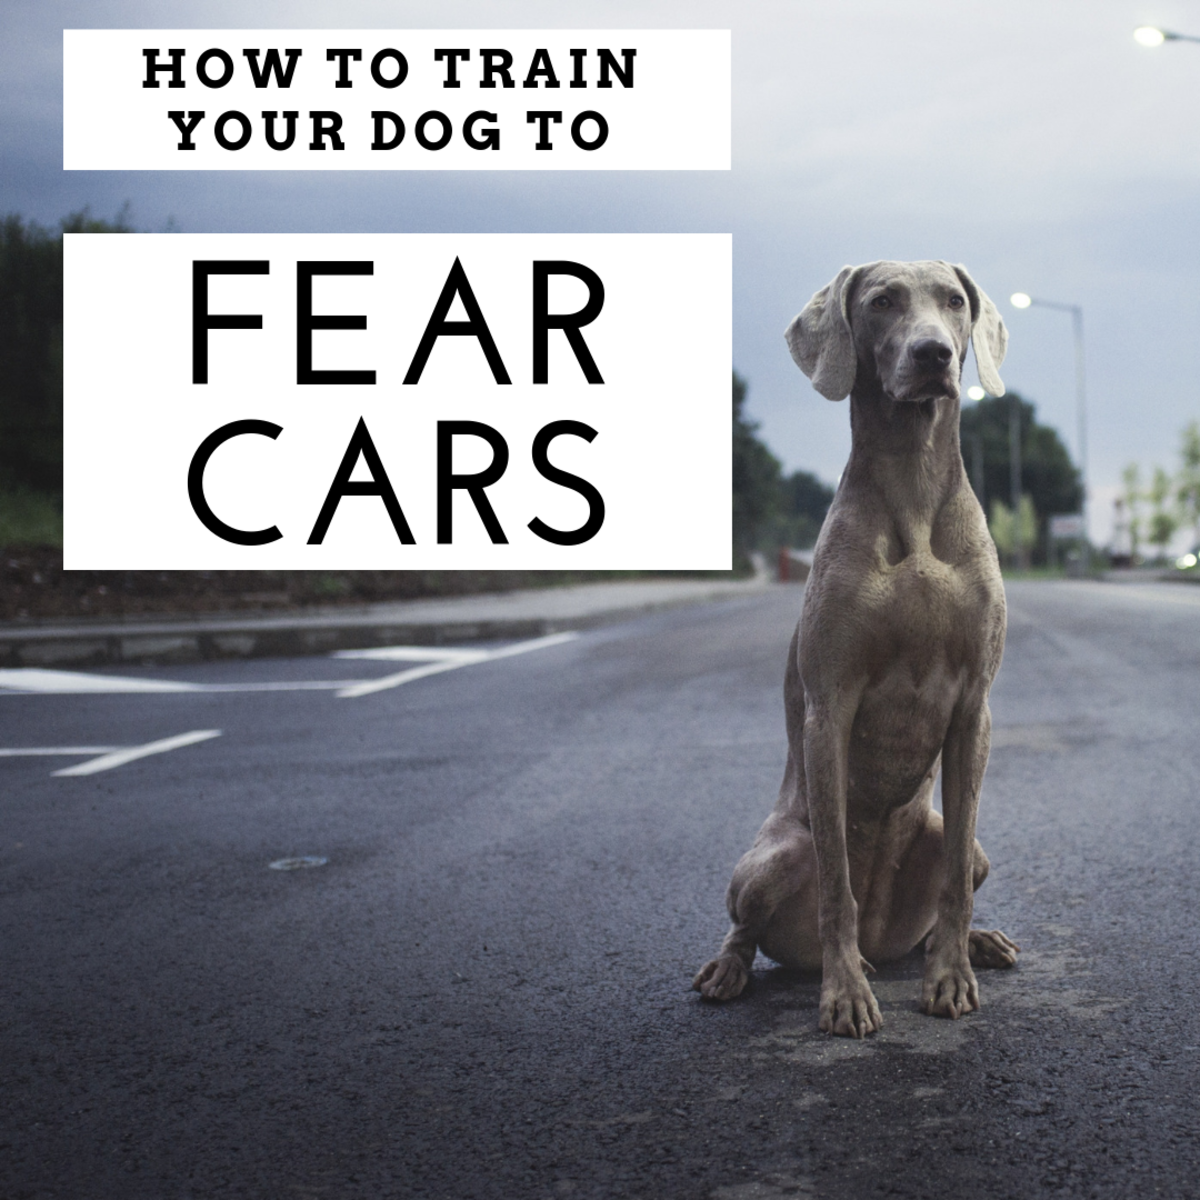 5 Easy Steps to Train a Dog to Avoid Cars